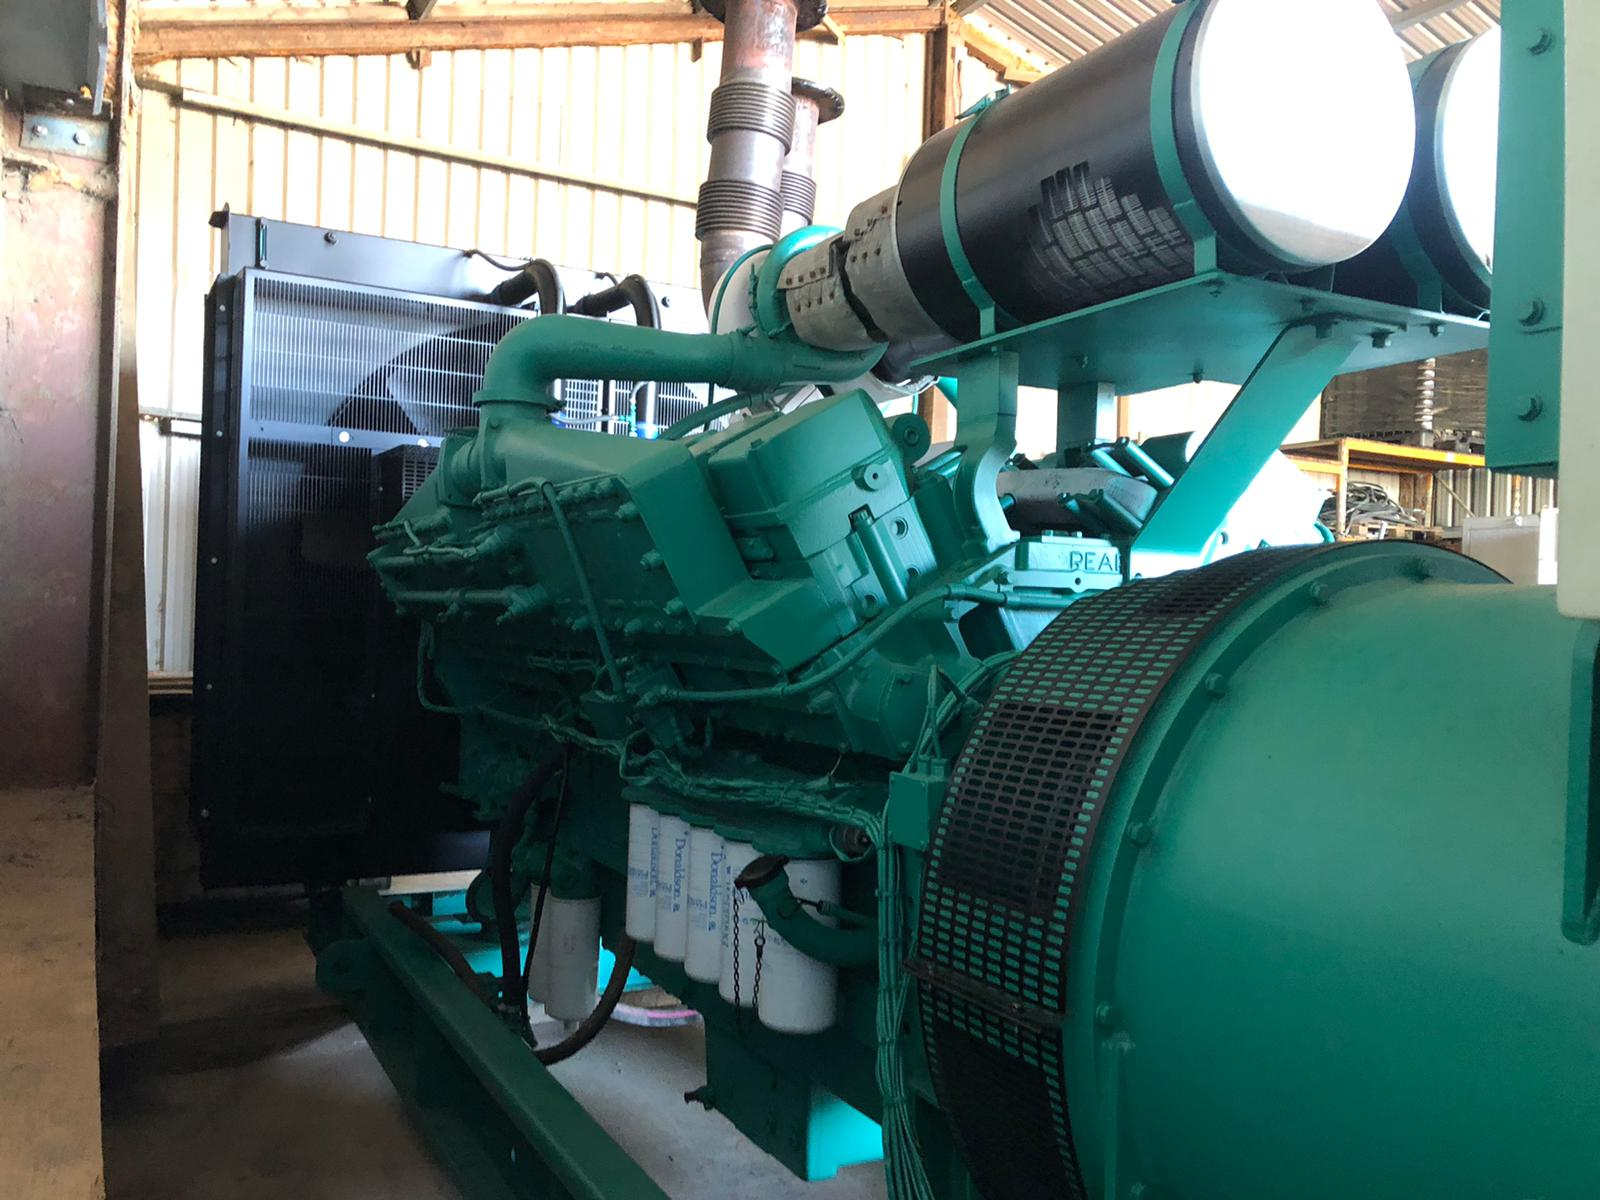 USED KTA50G3 GENERATOR FOR SALE